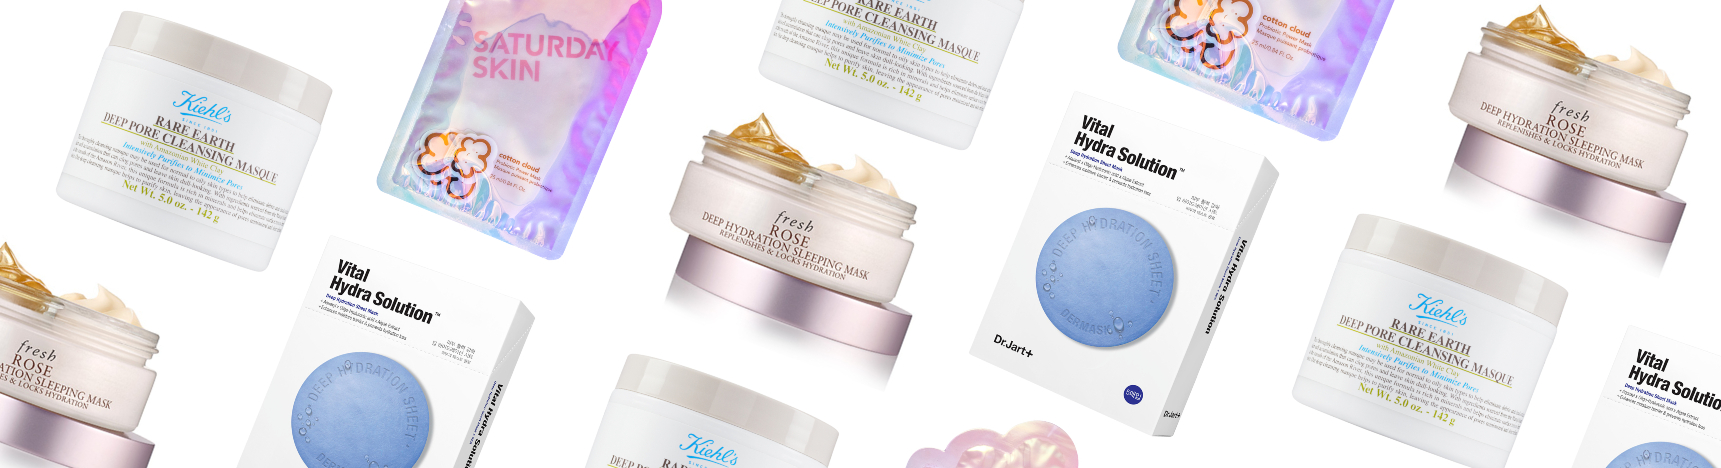 Your Go-To Face Mask Guide